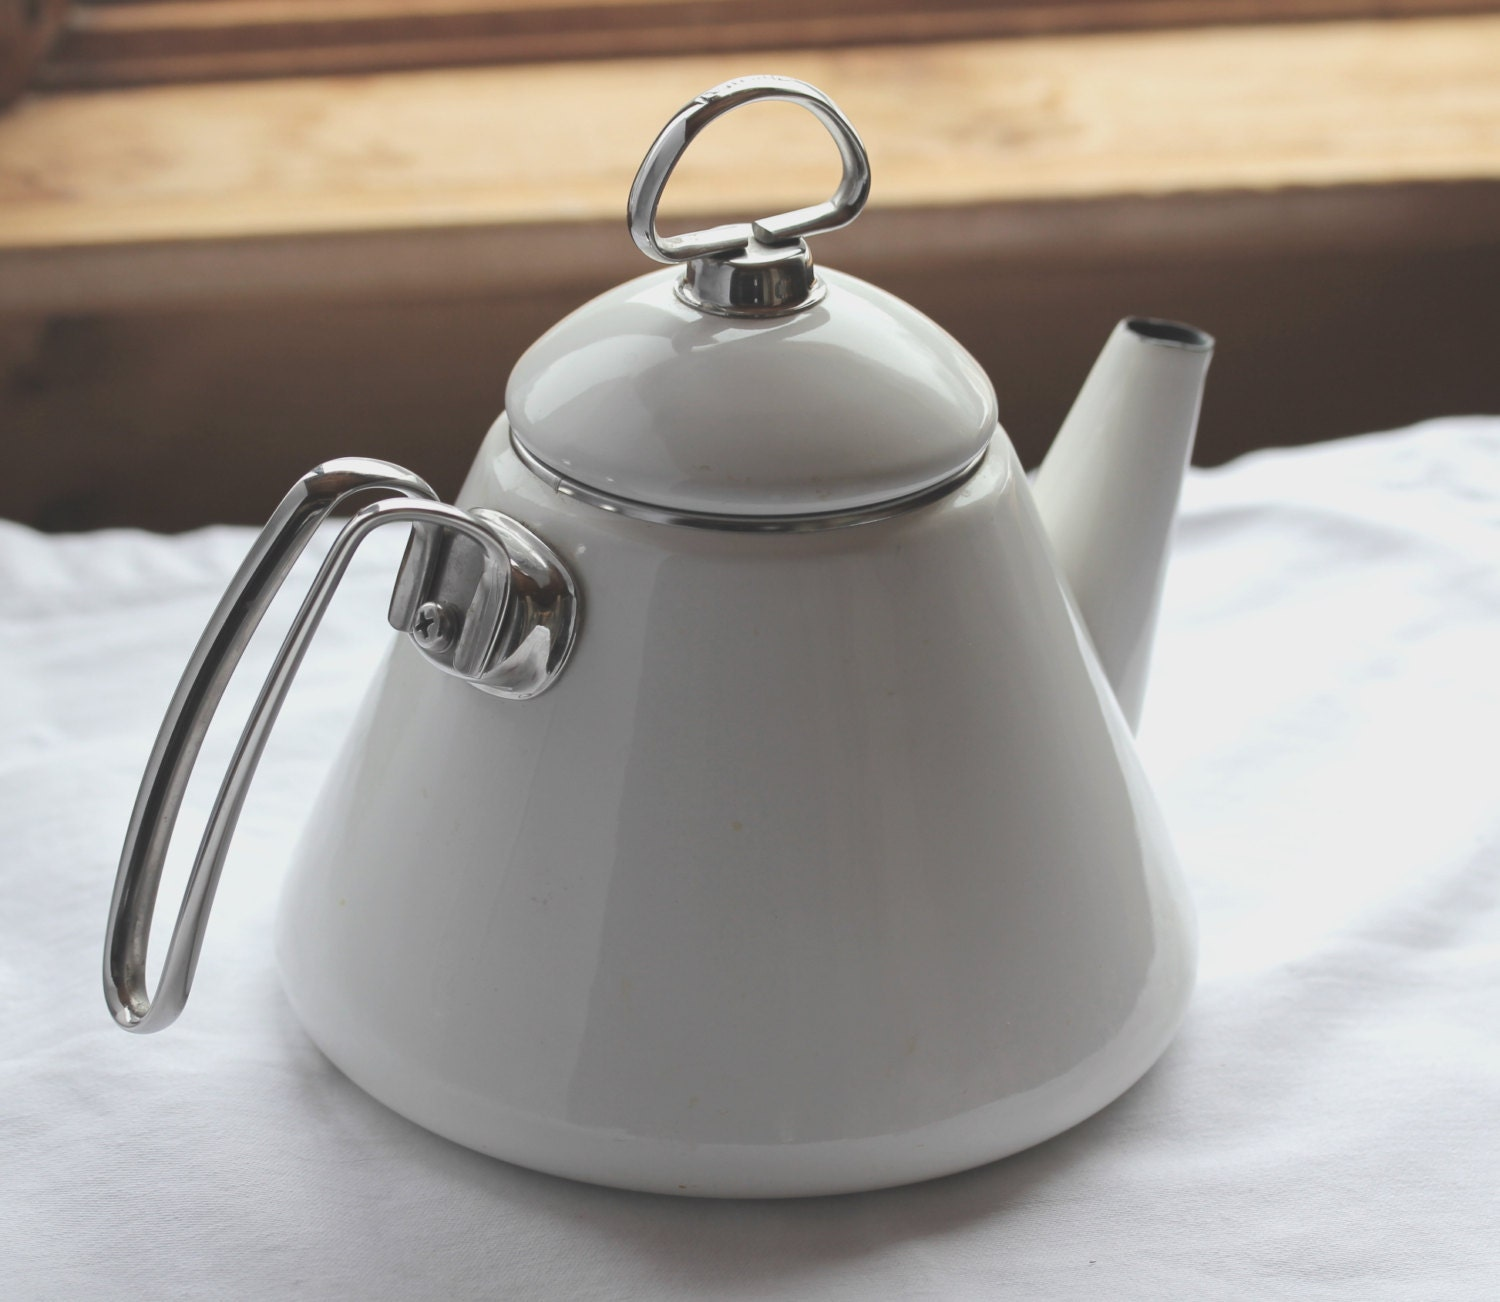 Vintage chantal tea kettle white by jewellbrookvintage on etsy - Chantal teapots ...